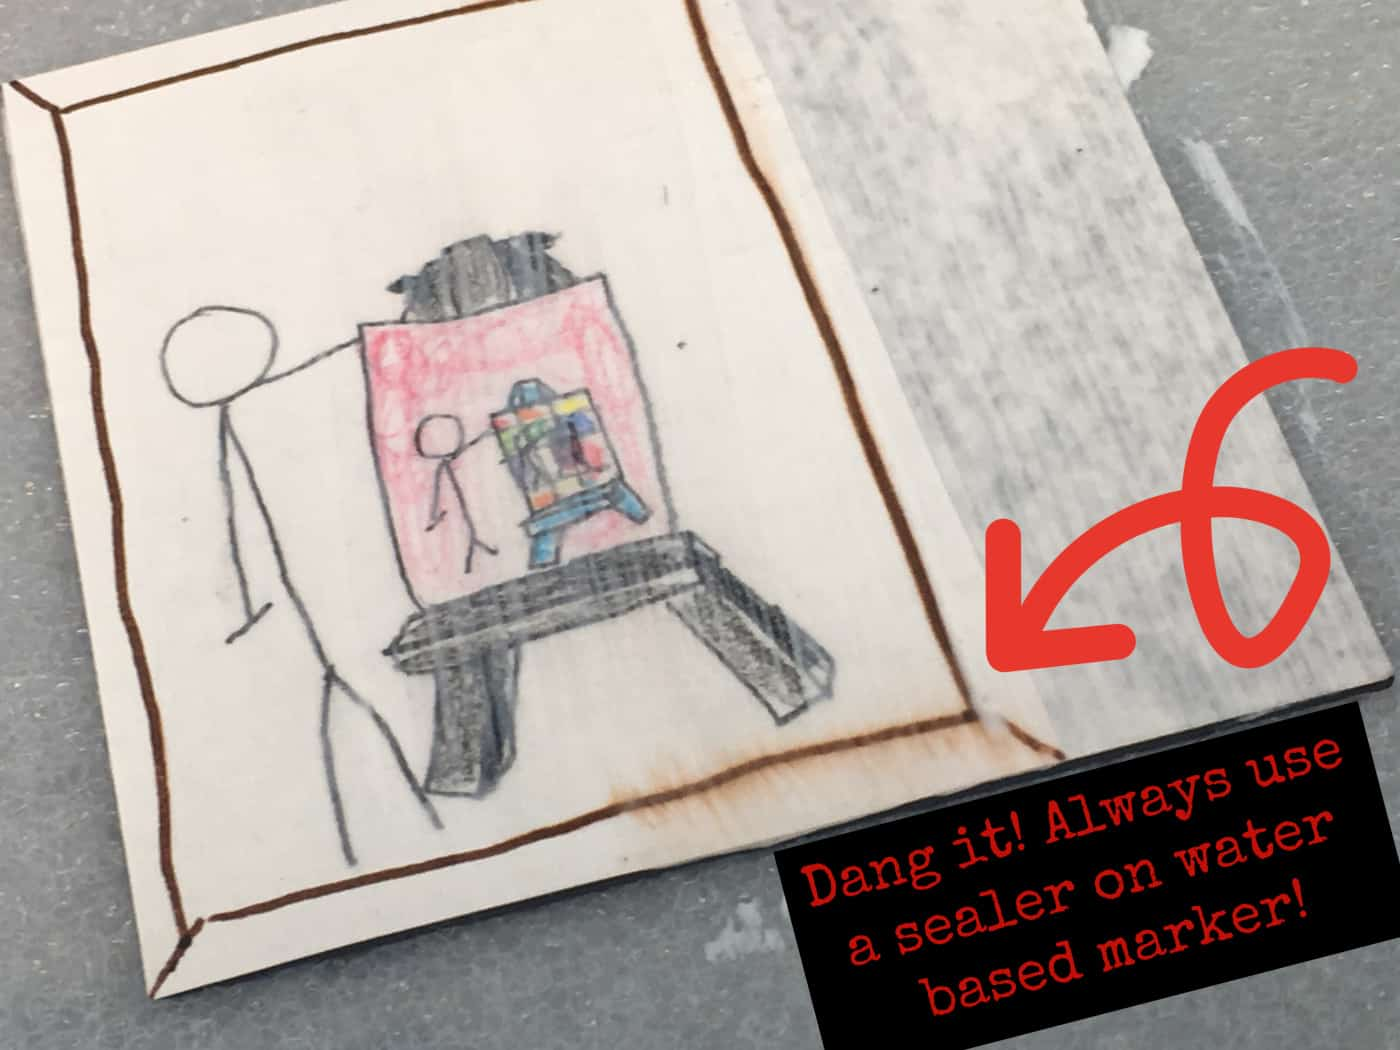 Kid drawing made with markers that smeared when Mod Podge was applied